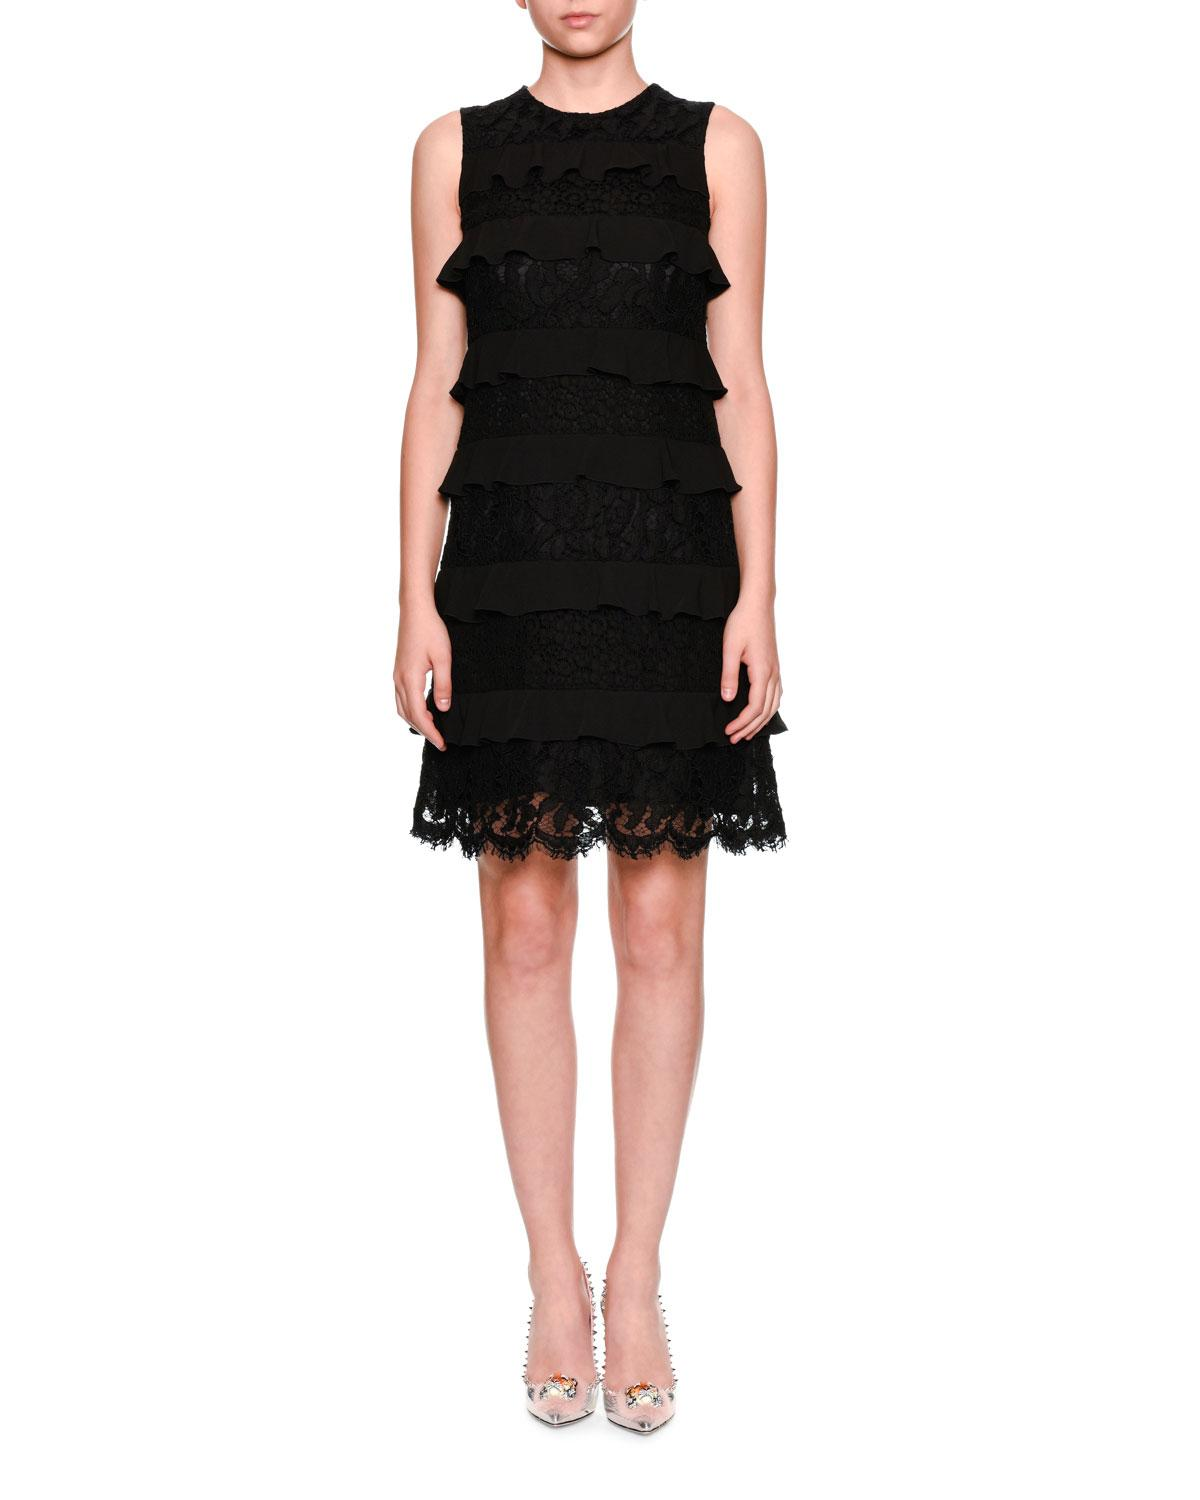 Dolce & Gabbana Sleeveless Tiered Lace Cocktail Shift Dress In Black